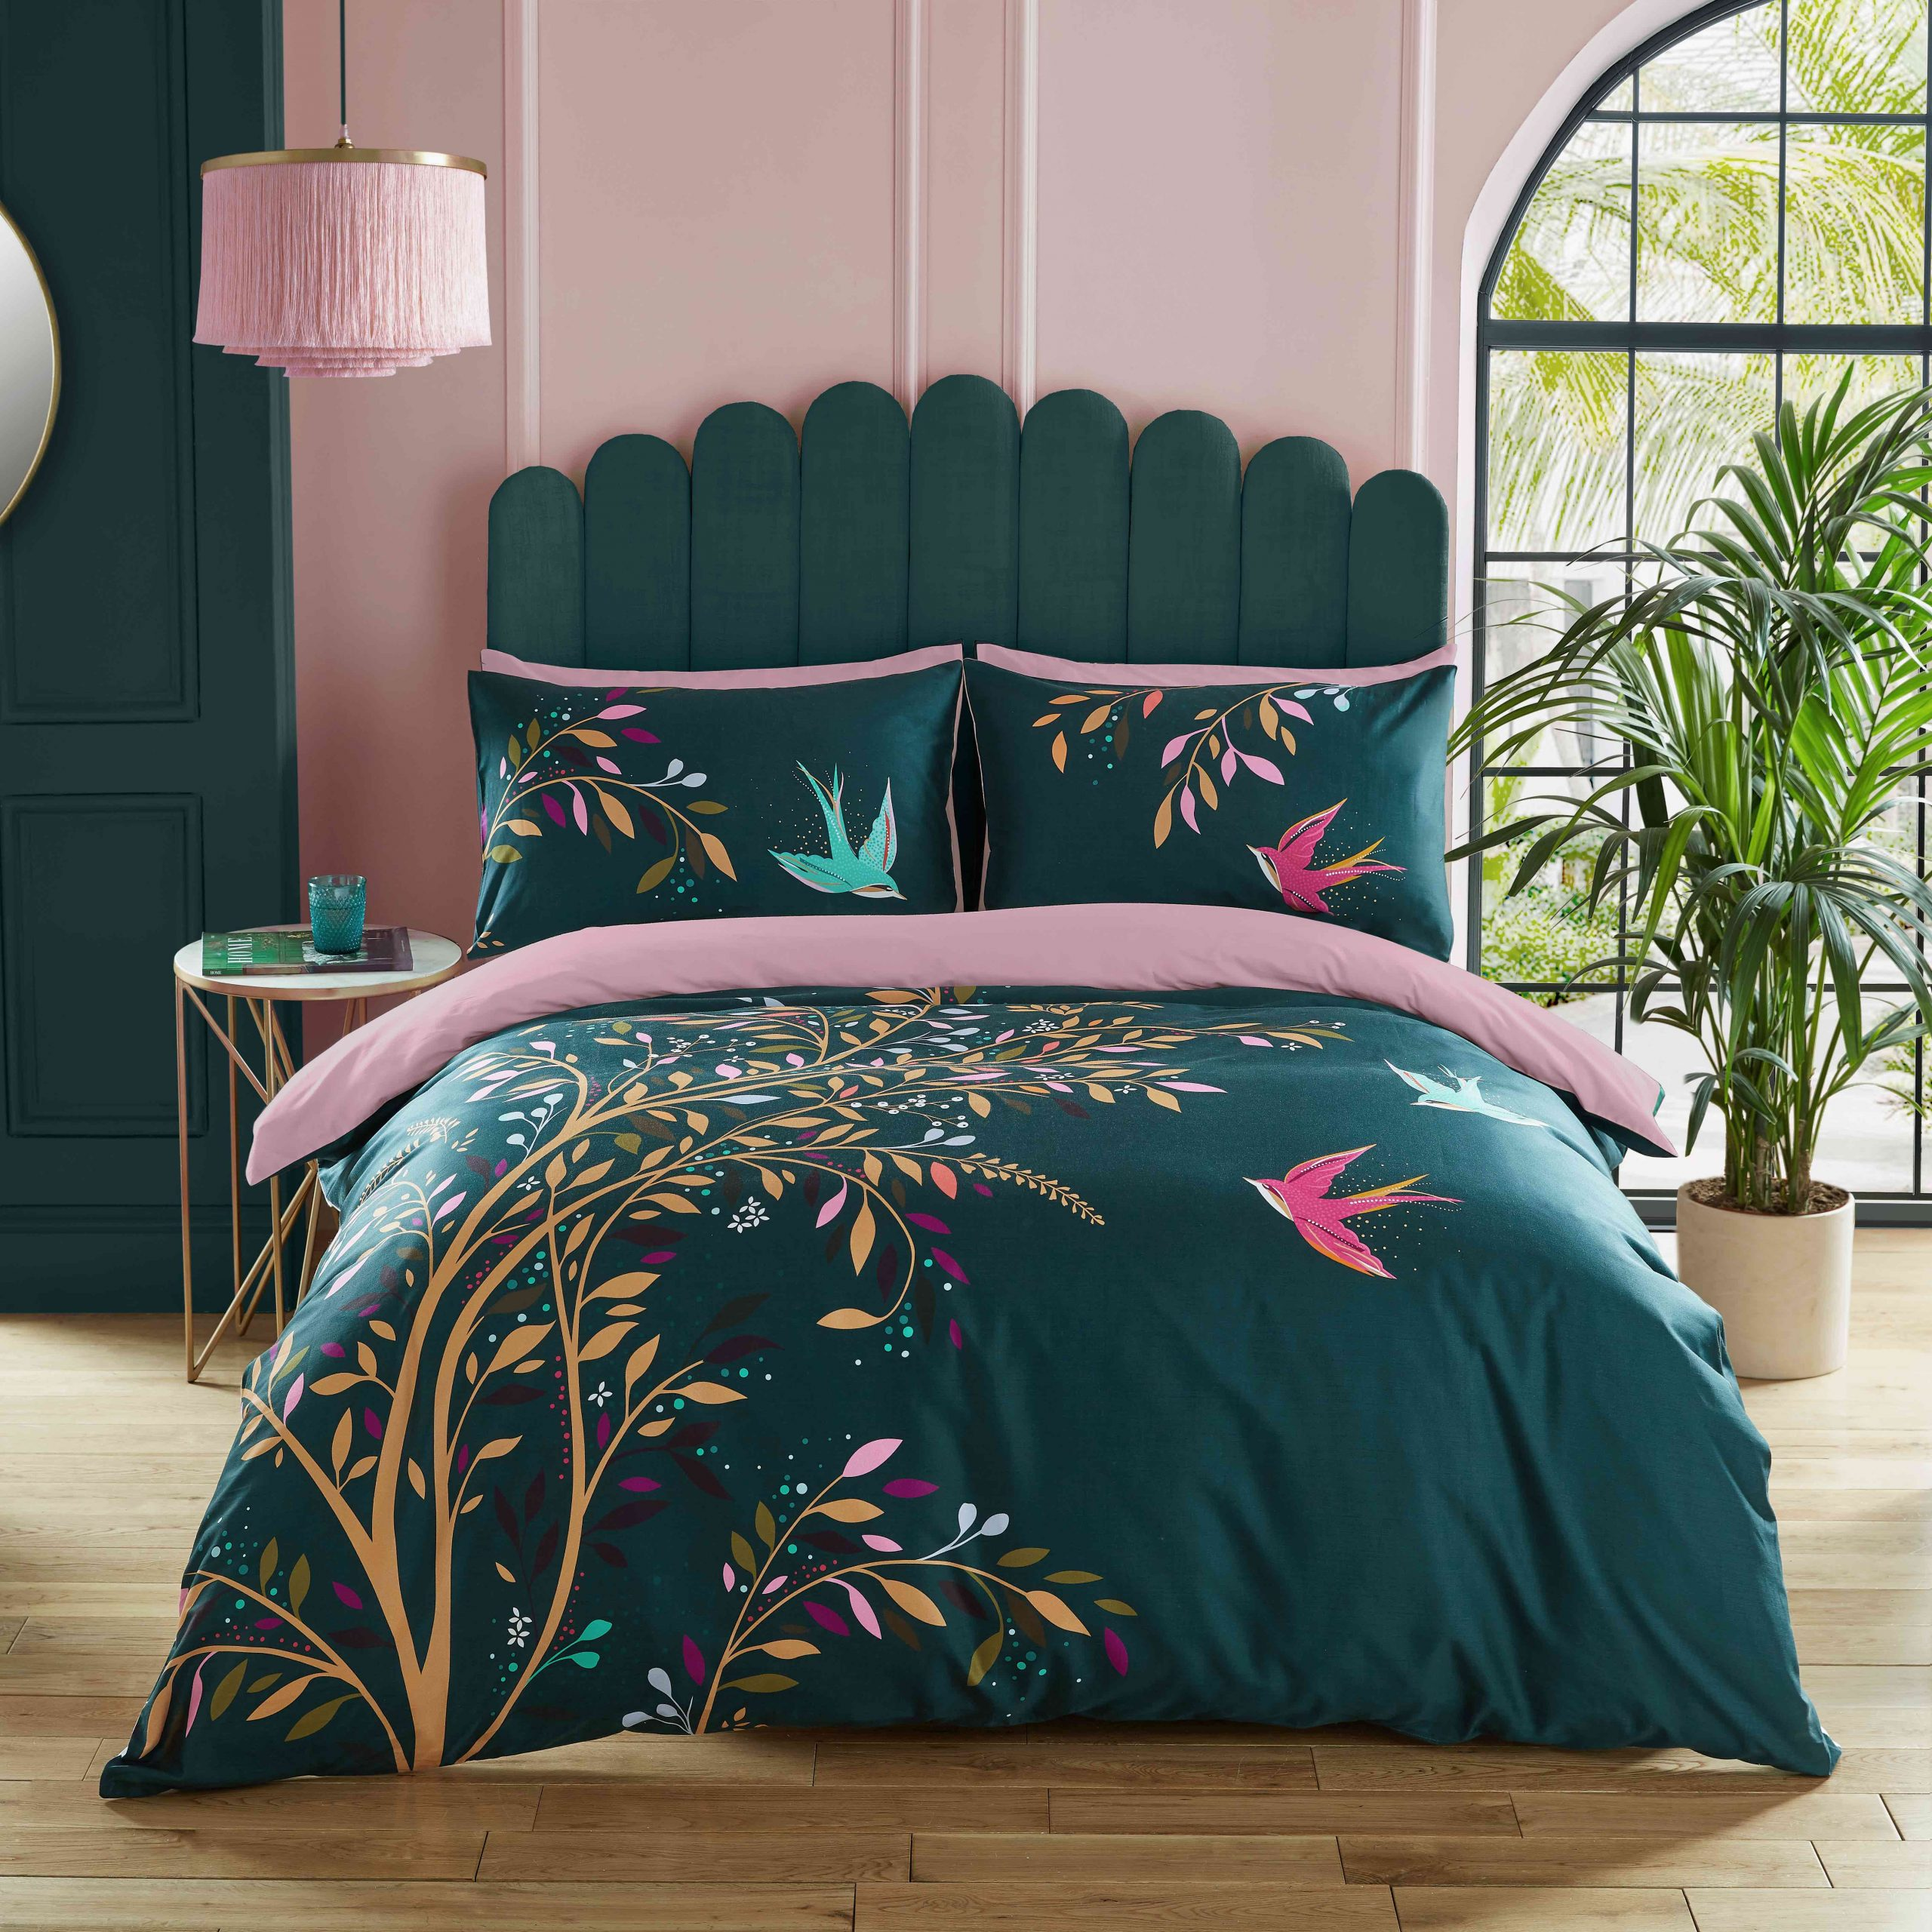 DANCING SWALLOWS DOUBLE QUILT SET - GREEN